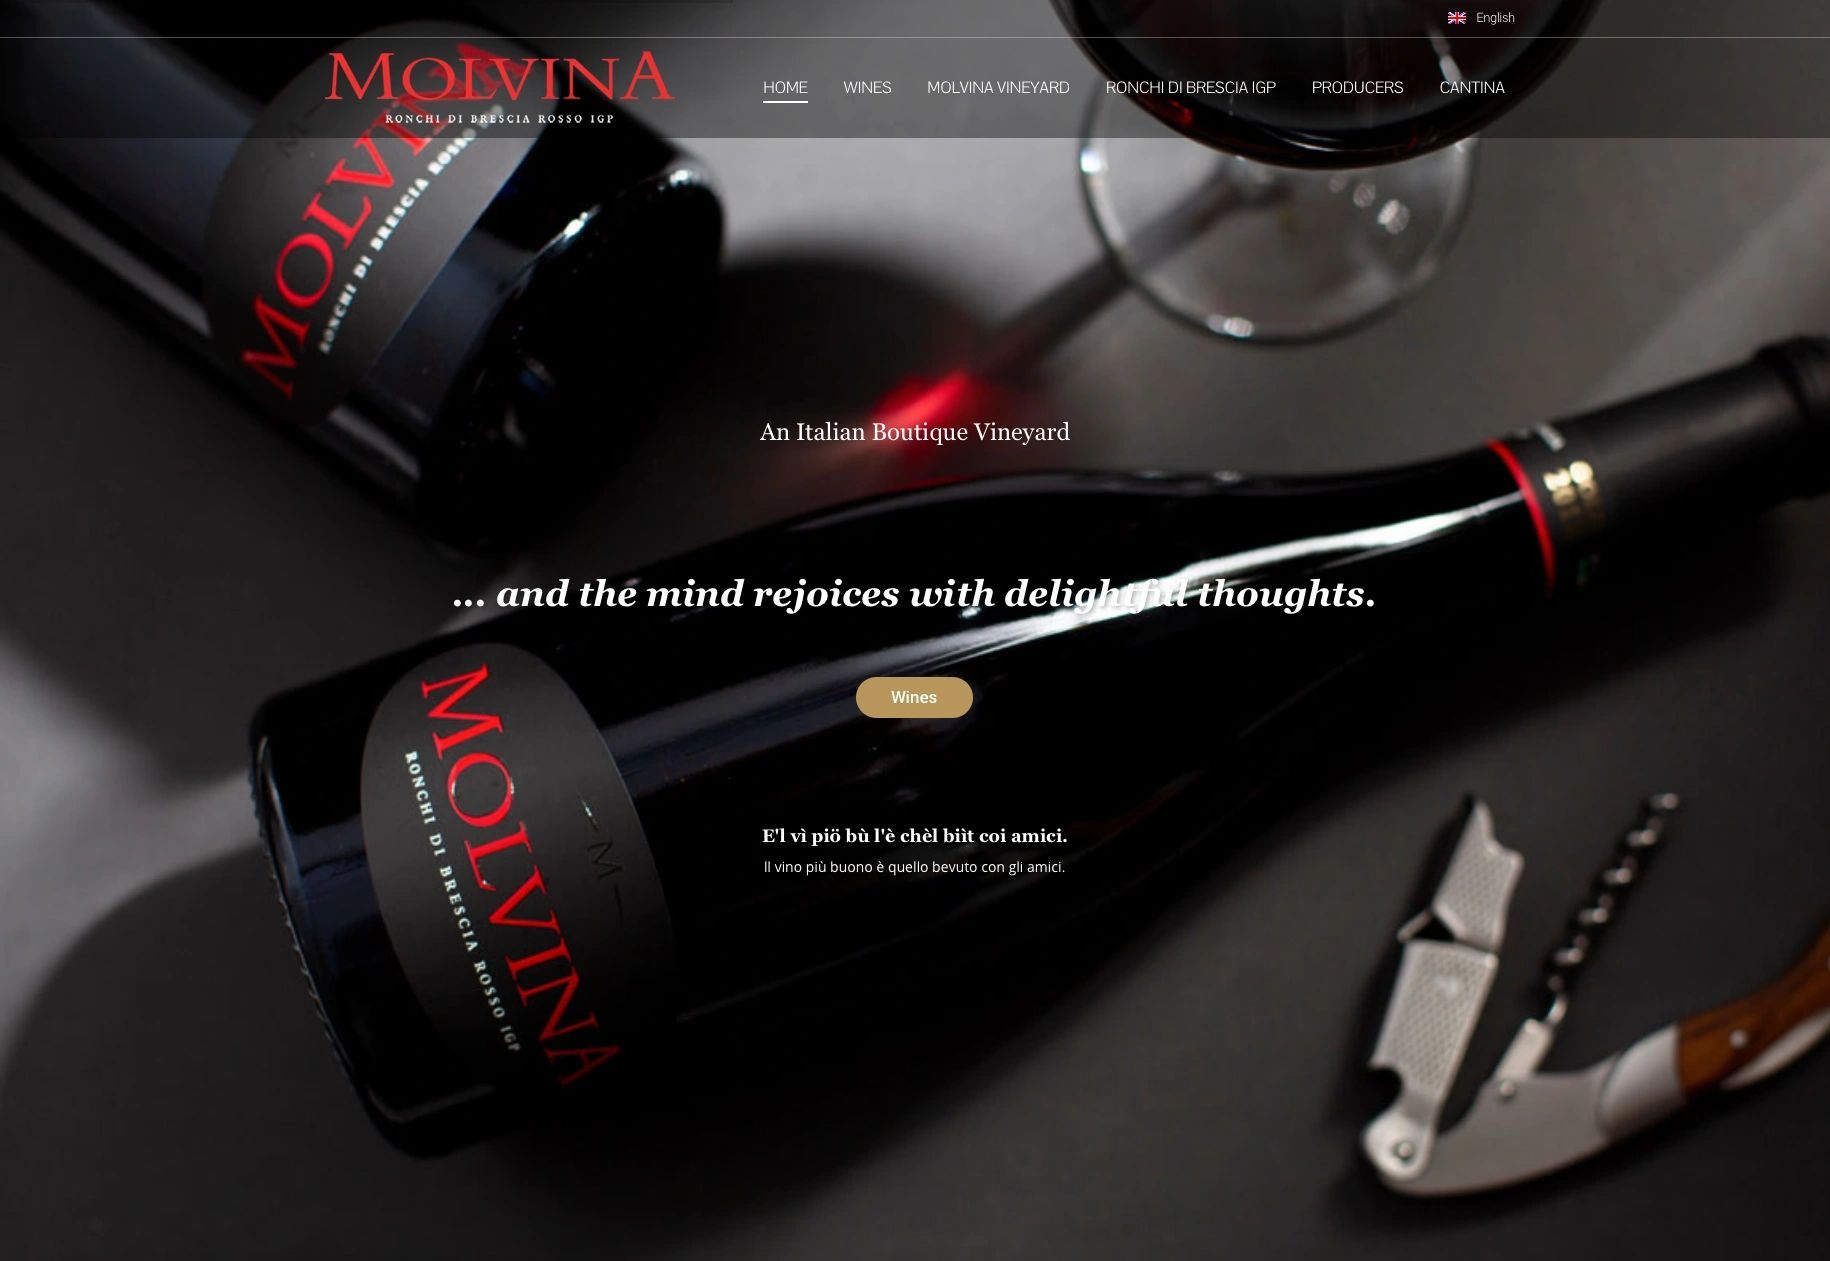 Award winning intense fine red wine. Molvina Wine high quality wine and for  Italian artisan